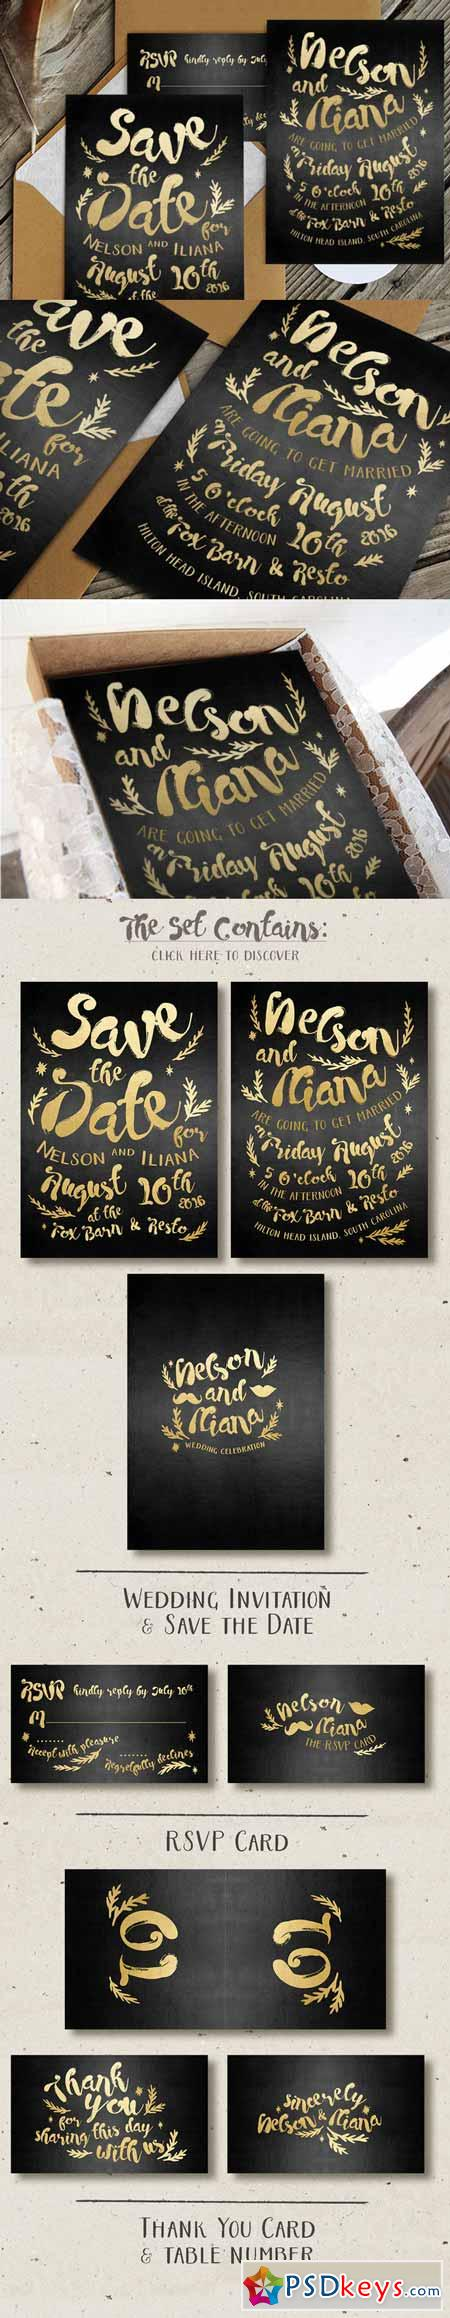 Black & Gold Hipster Invitation 479574